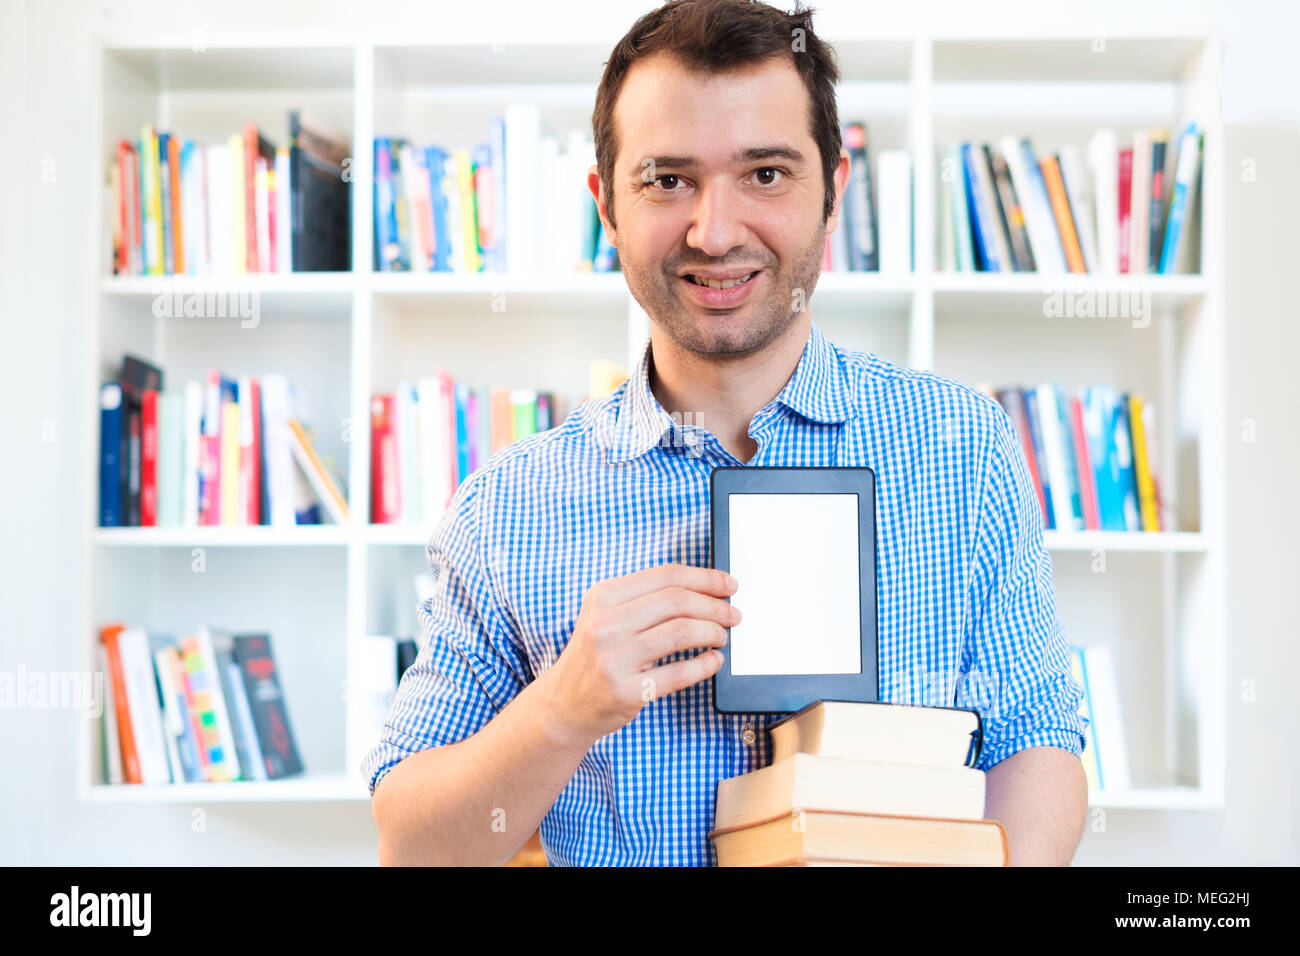 Man reading an e-book on digital tablet device - Stock Image